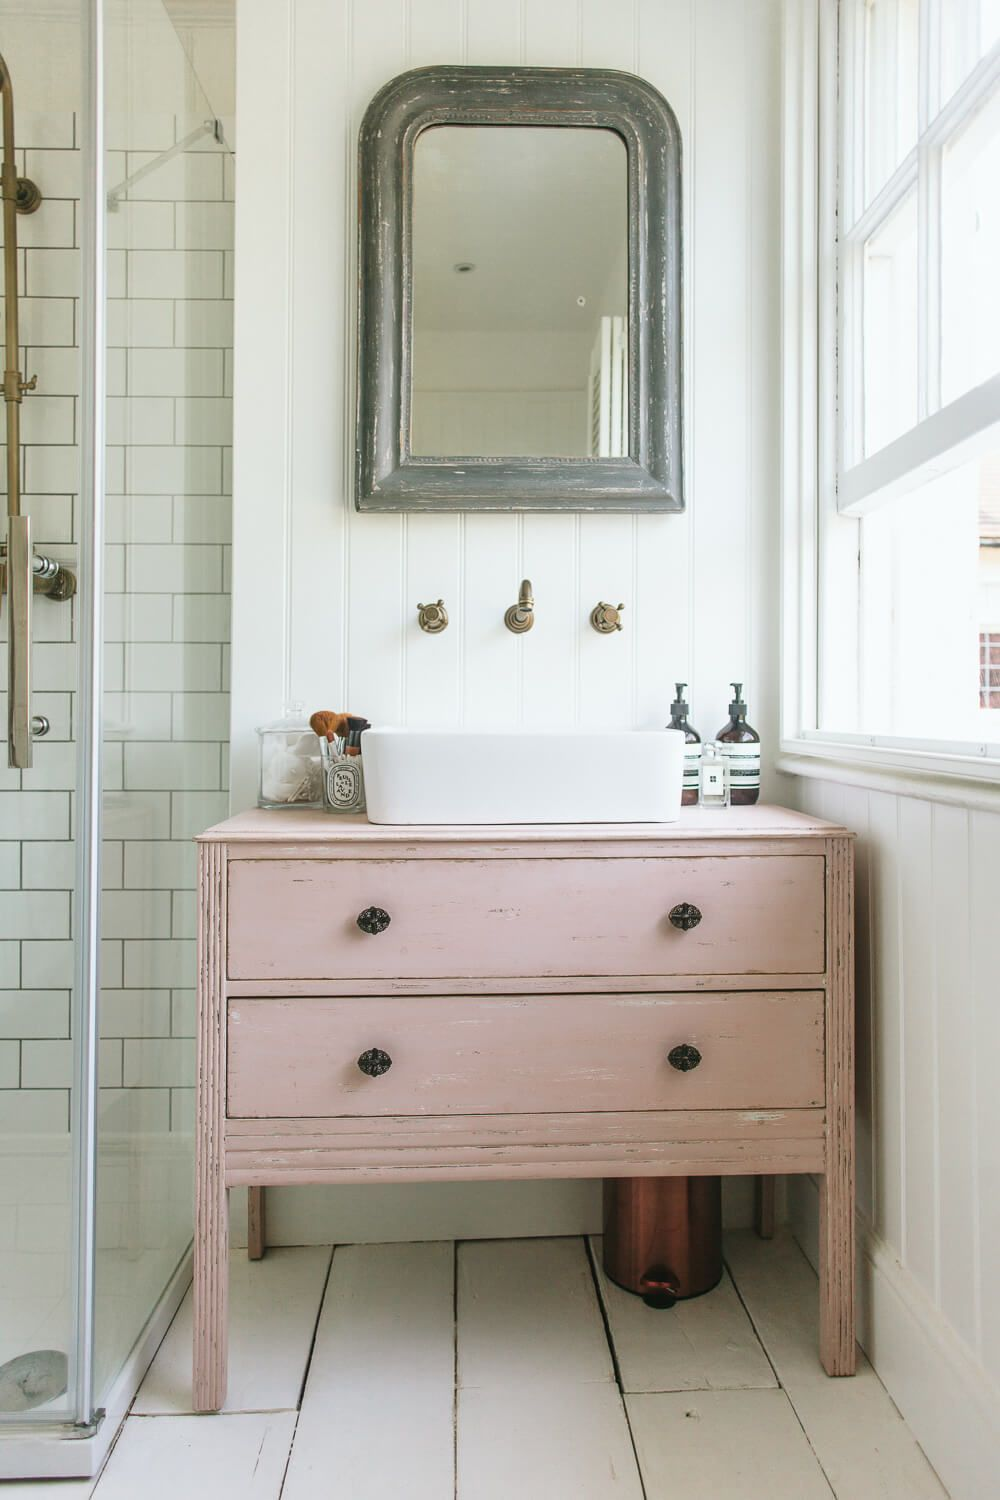 DIY Upcycled Dresser Bathroom Vanity | Bathroom in 9 | Bathroom ...